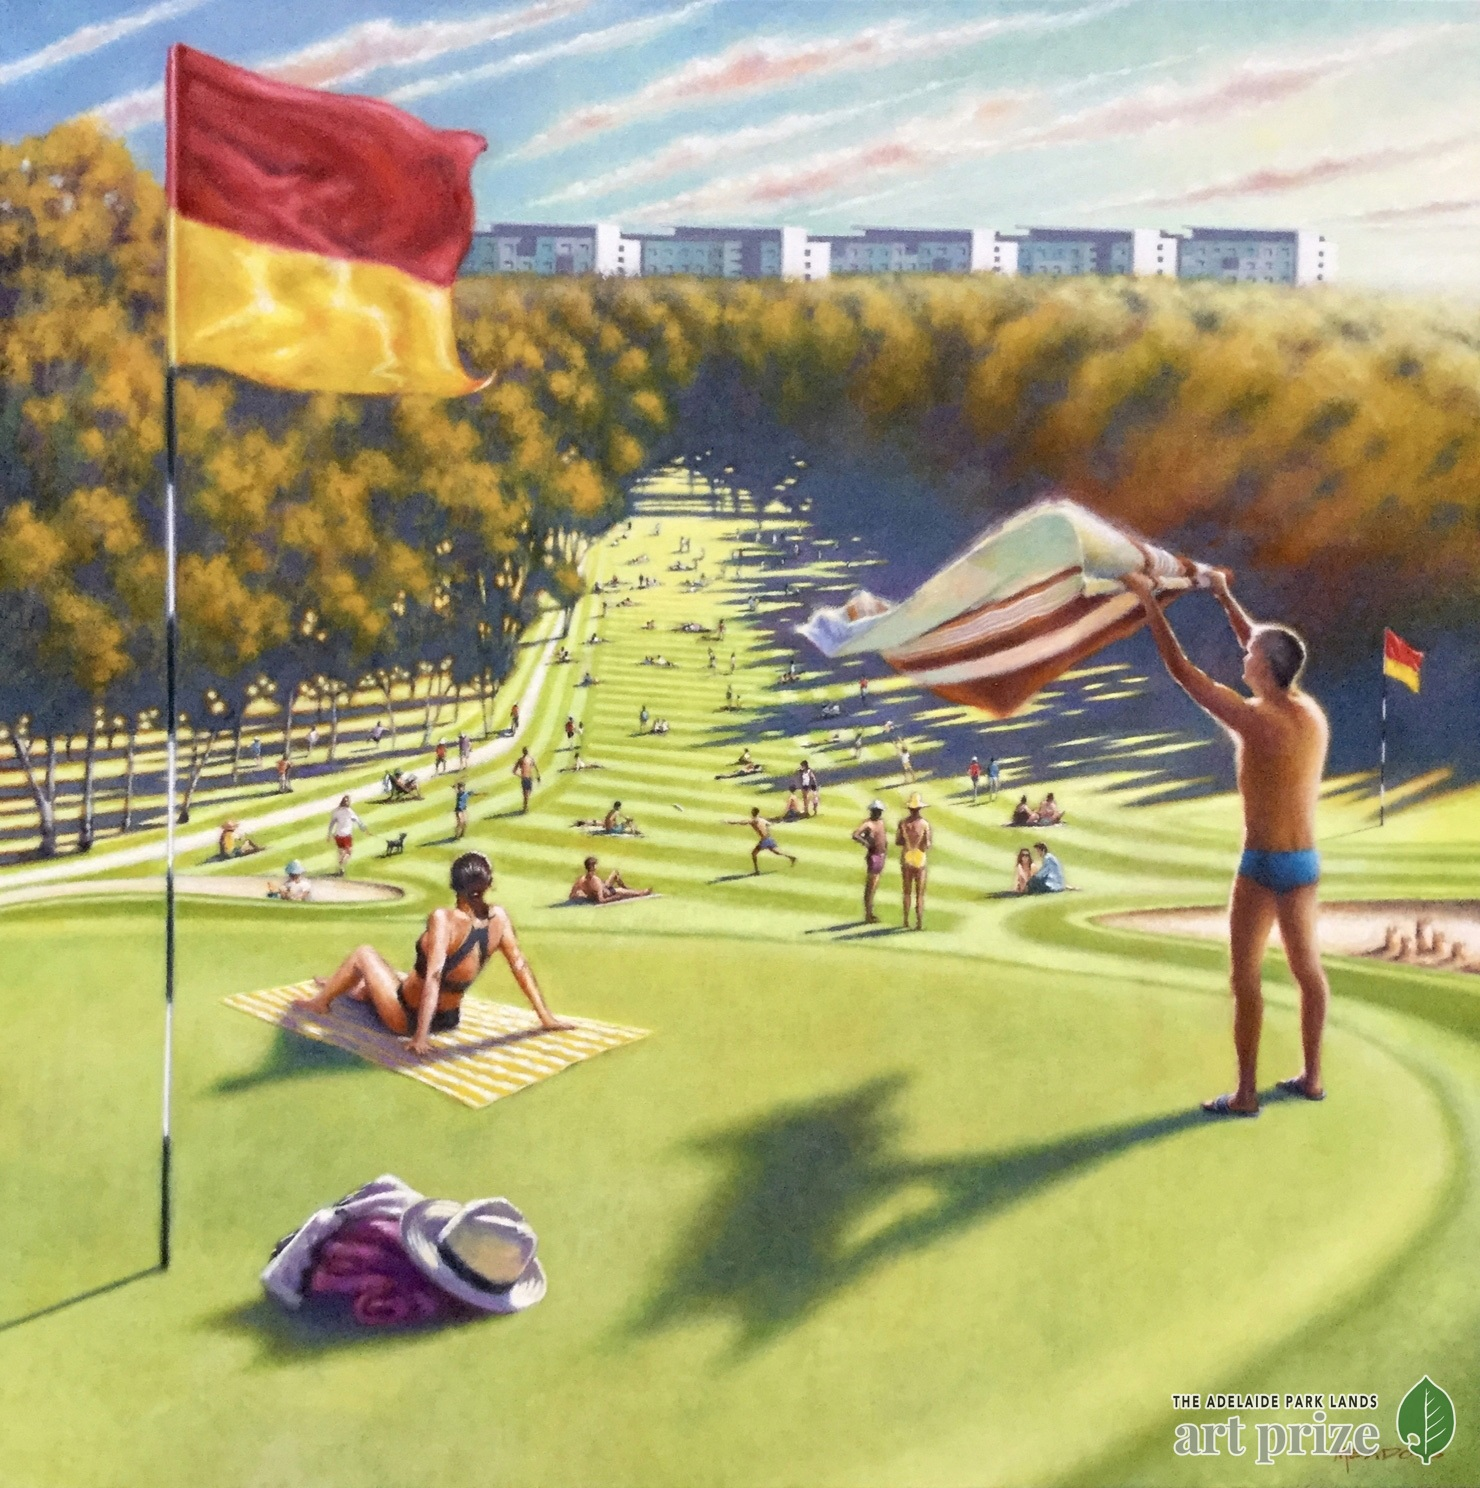 Artist christopher meadows between the flags